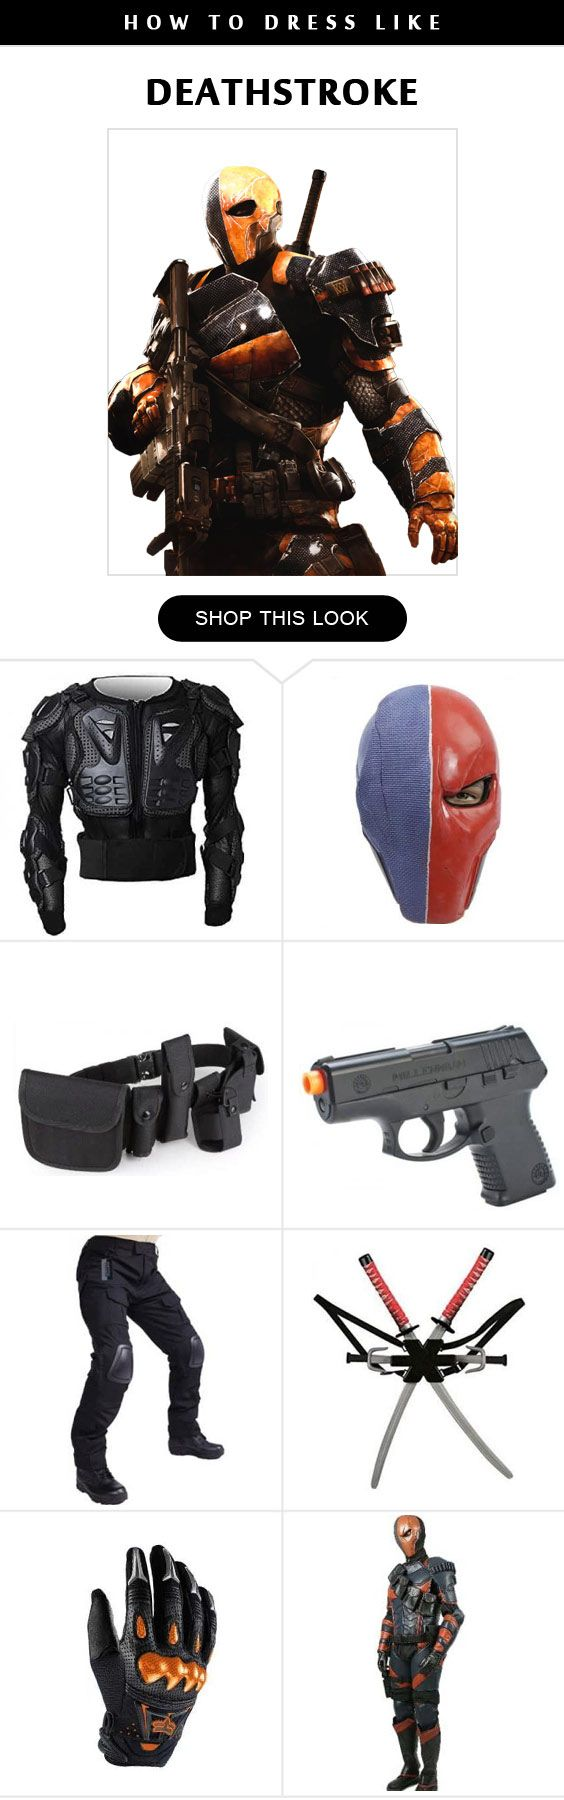 Deathstroke Cosplay Costume Infographic